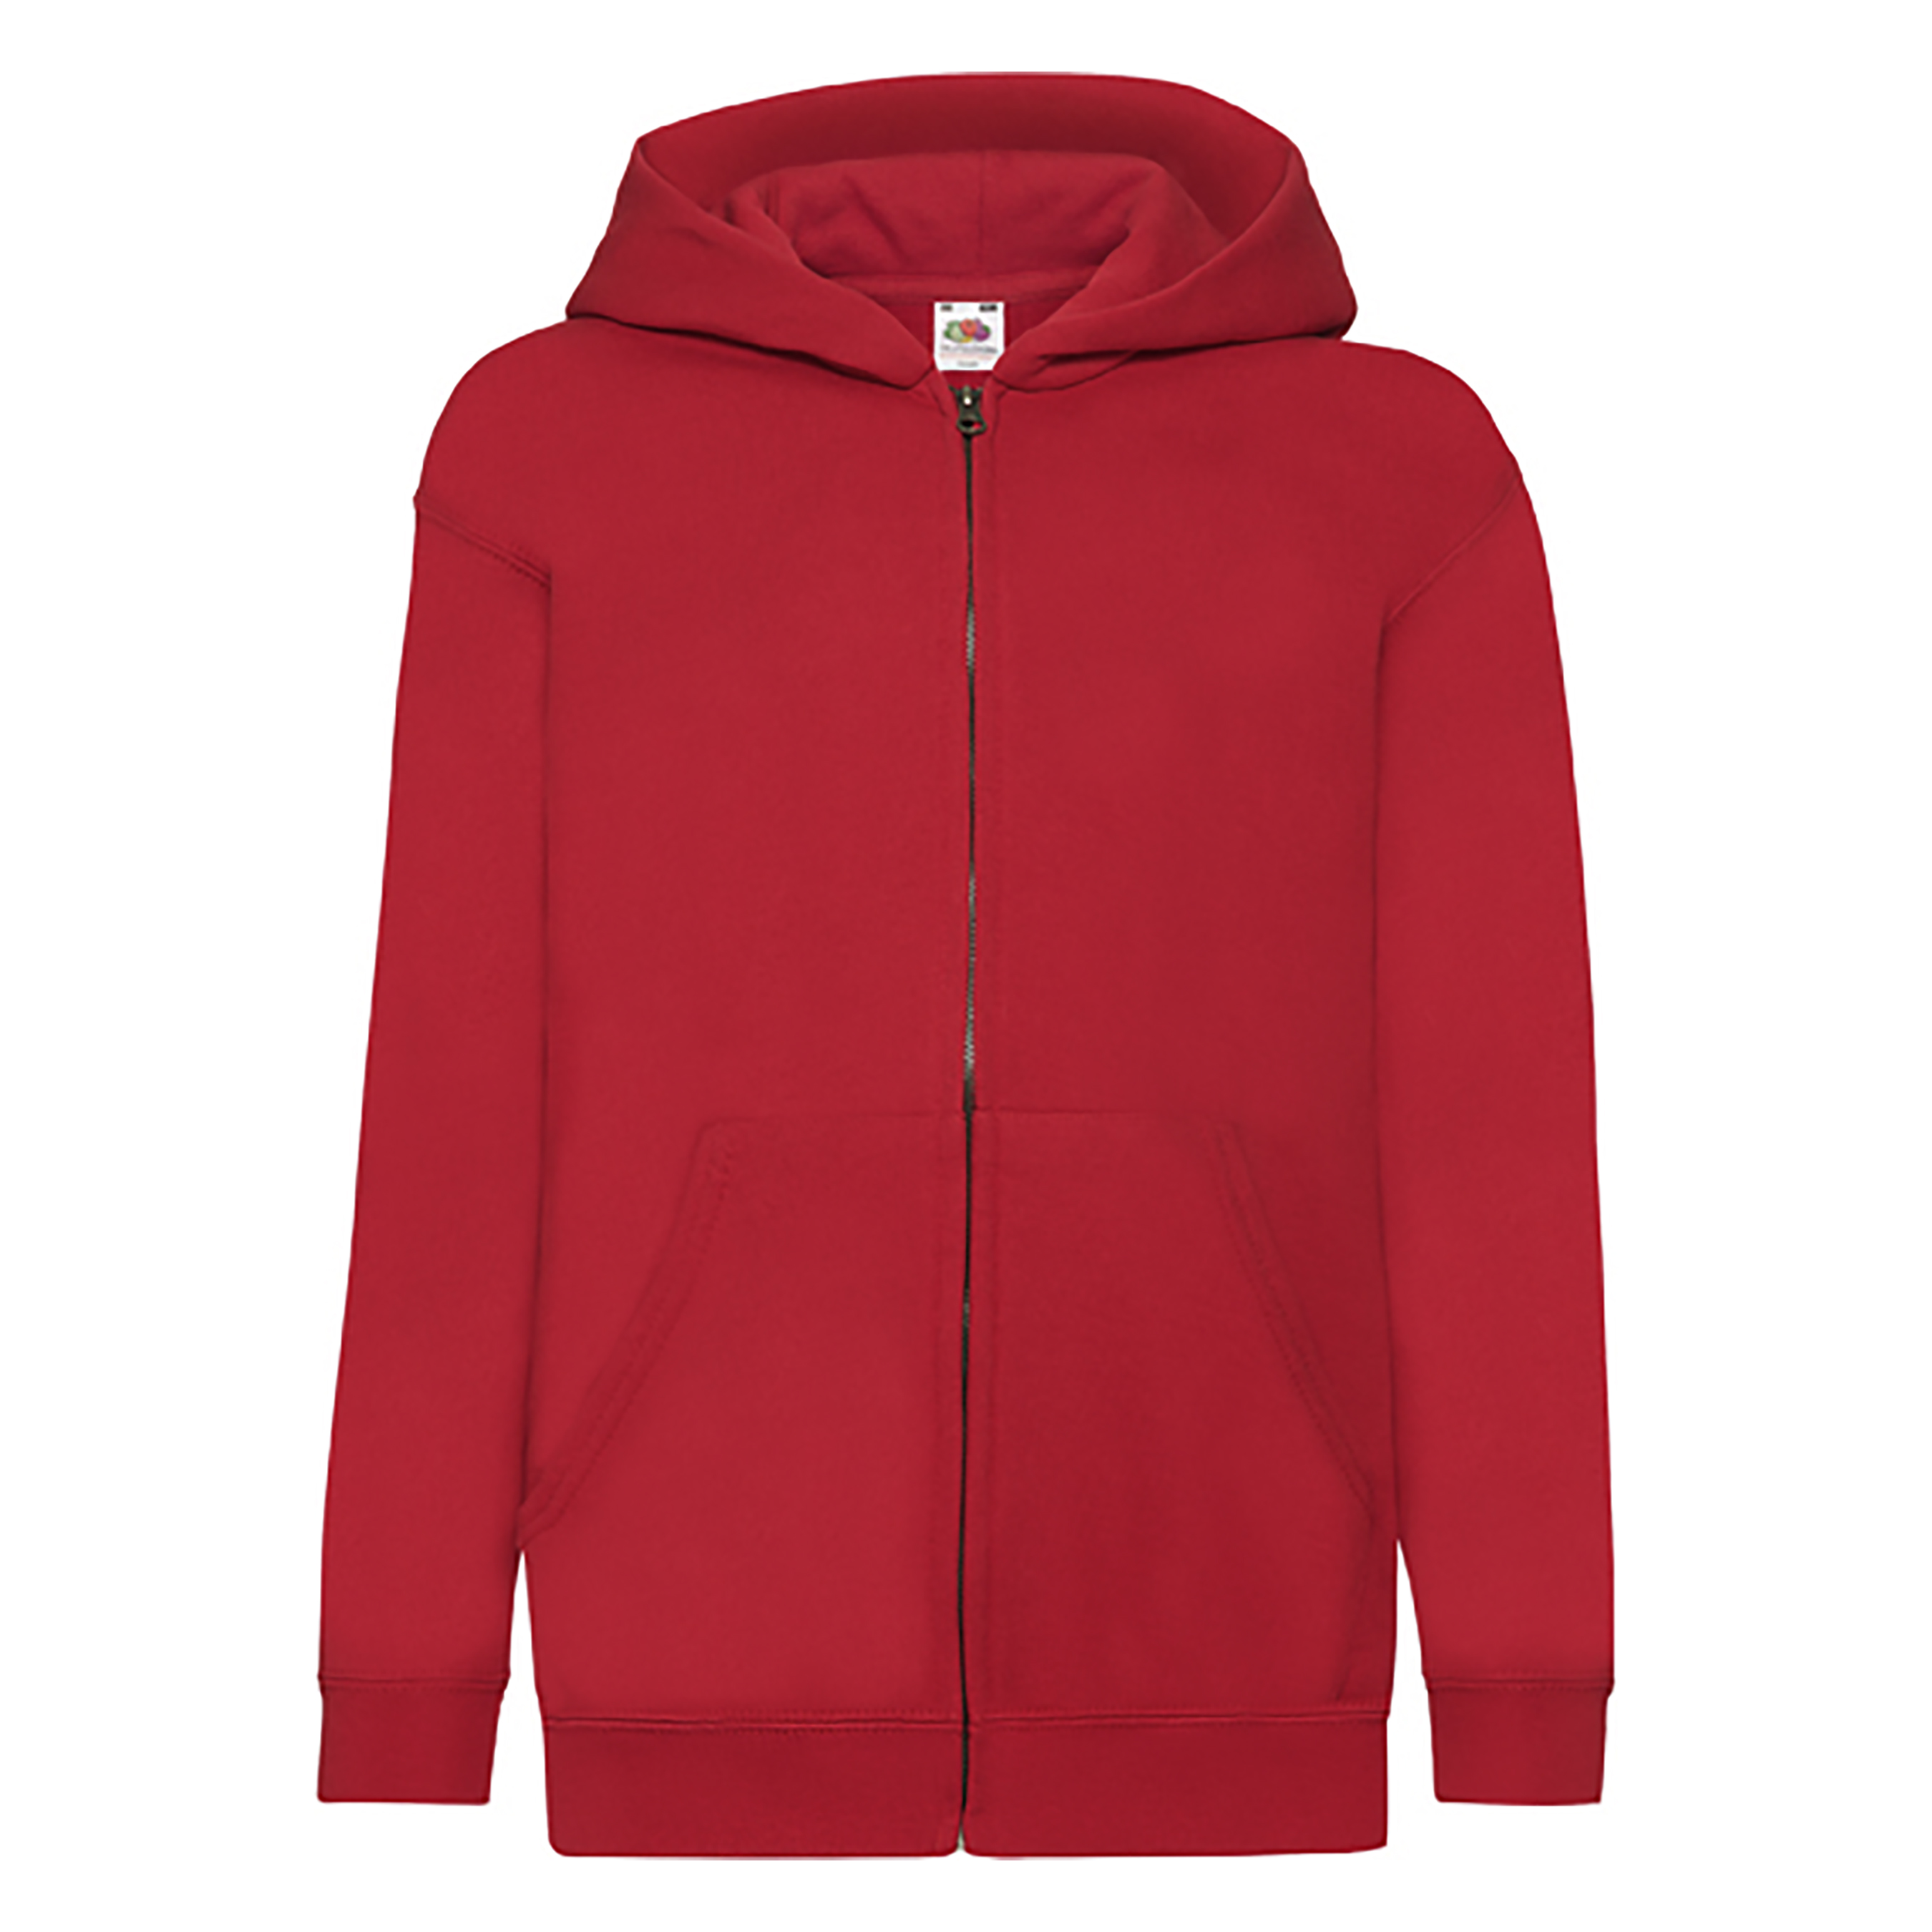 Bluza Dziecięca Z Kapturem Rozpinana Zip Through Hooded Sweat 620450 80/20 280g